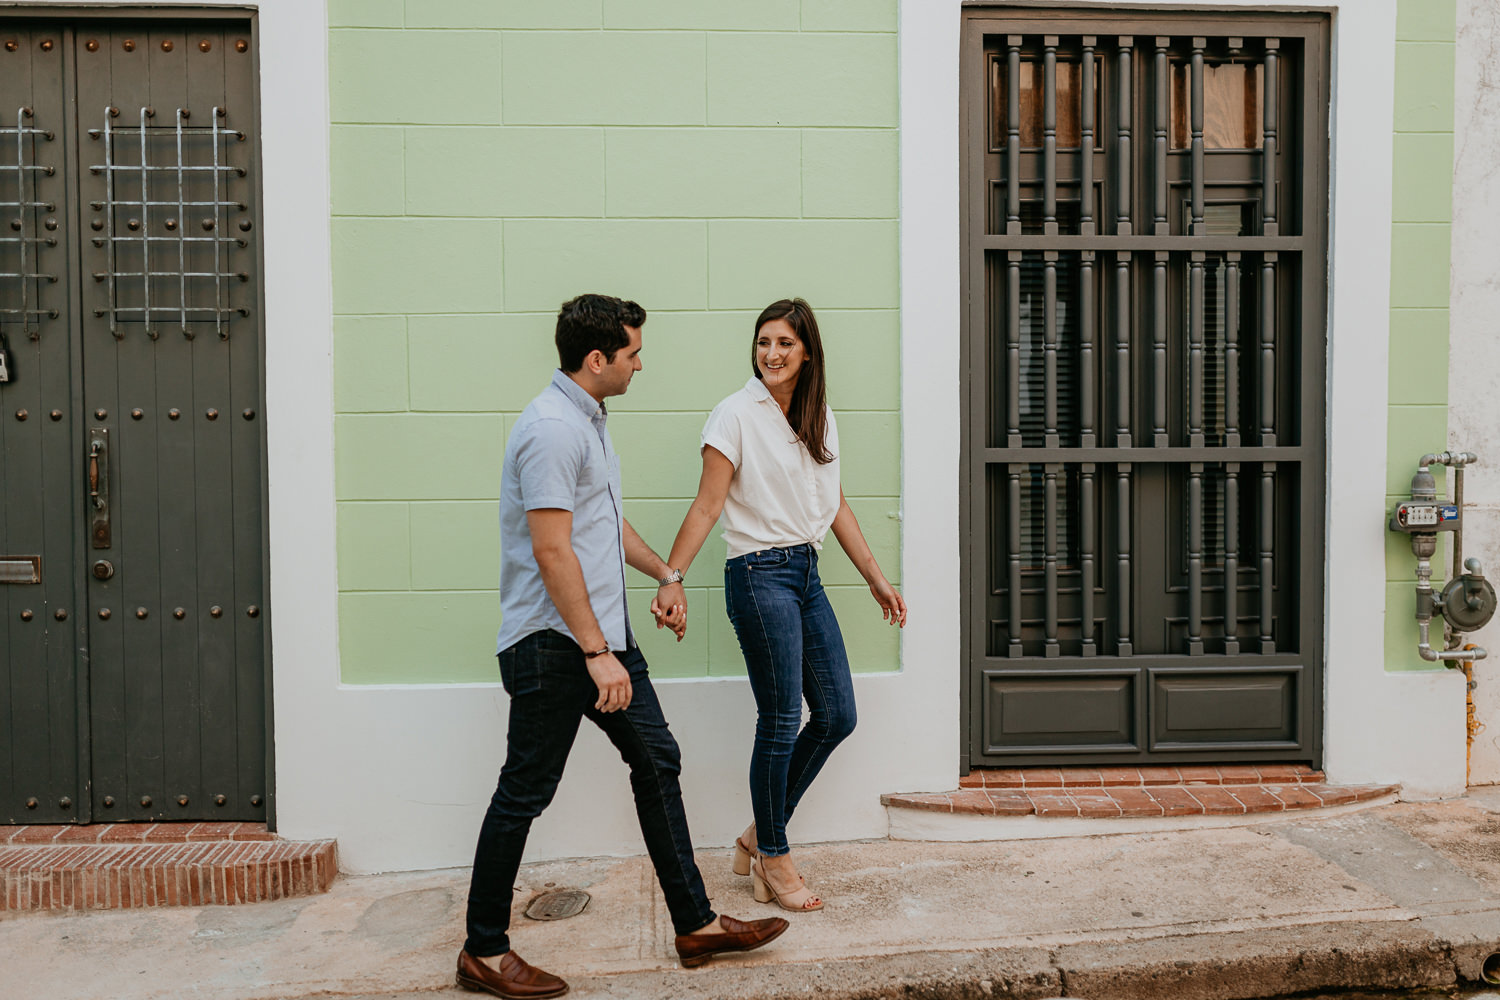 couple walking holding hands and laughing as they pass a lime green wall